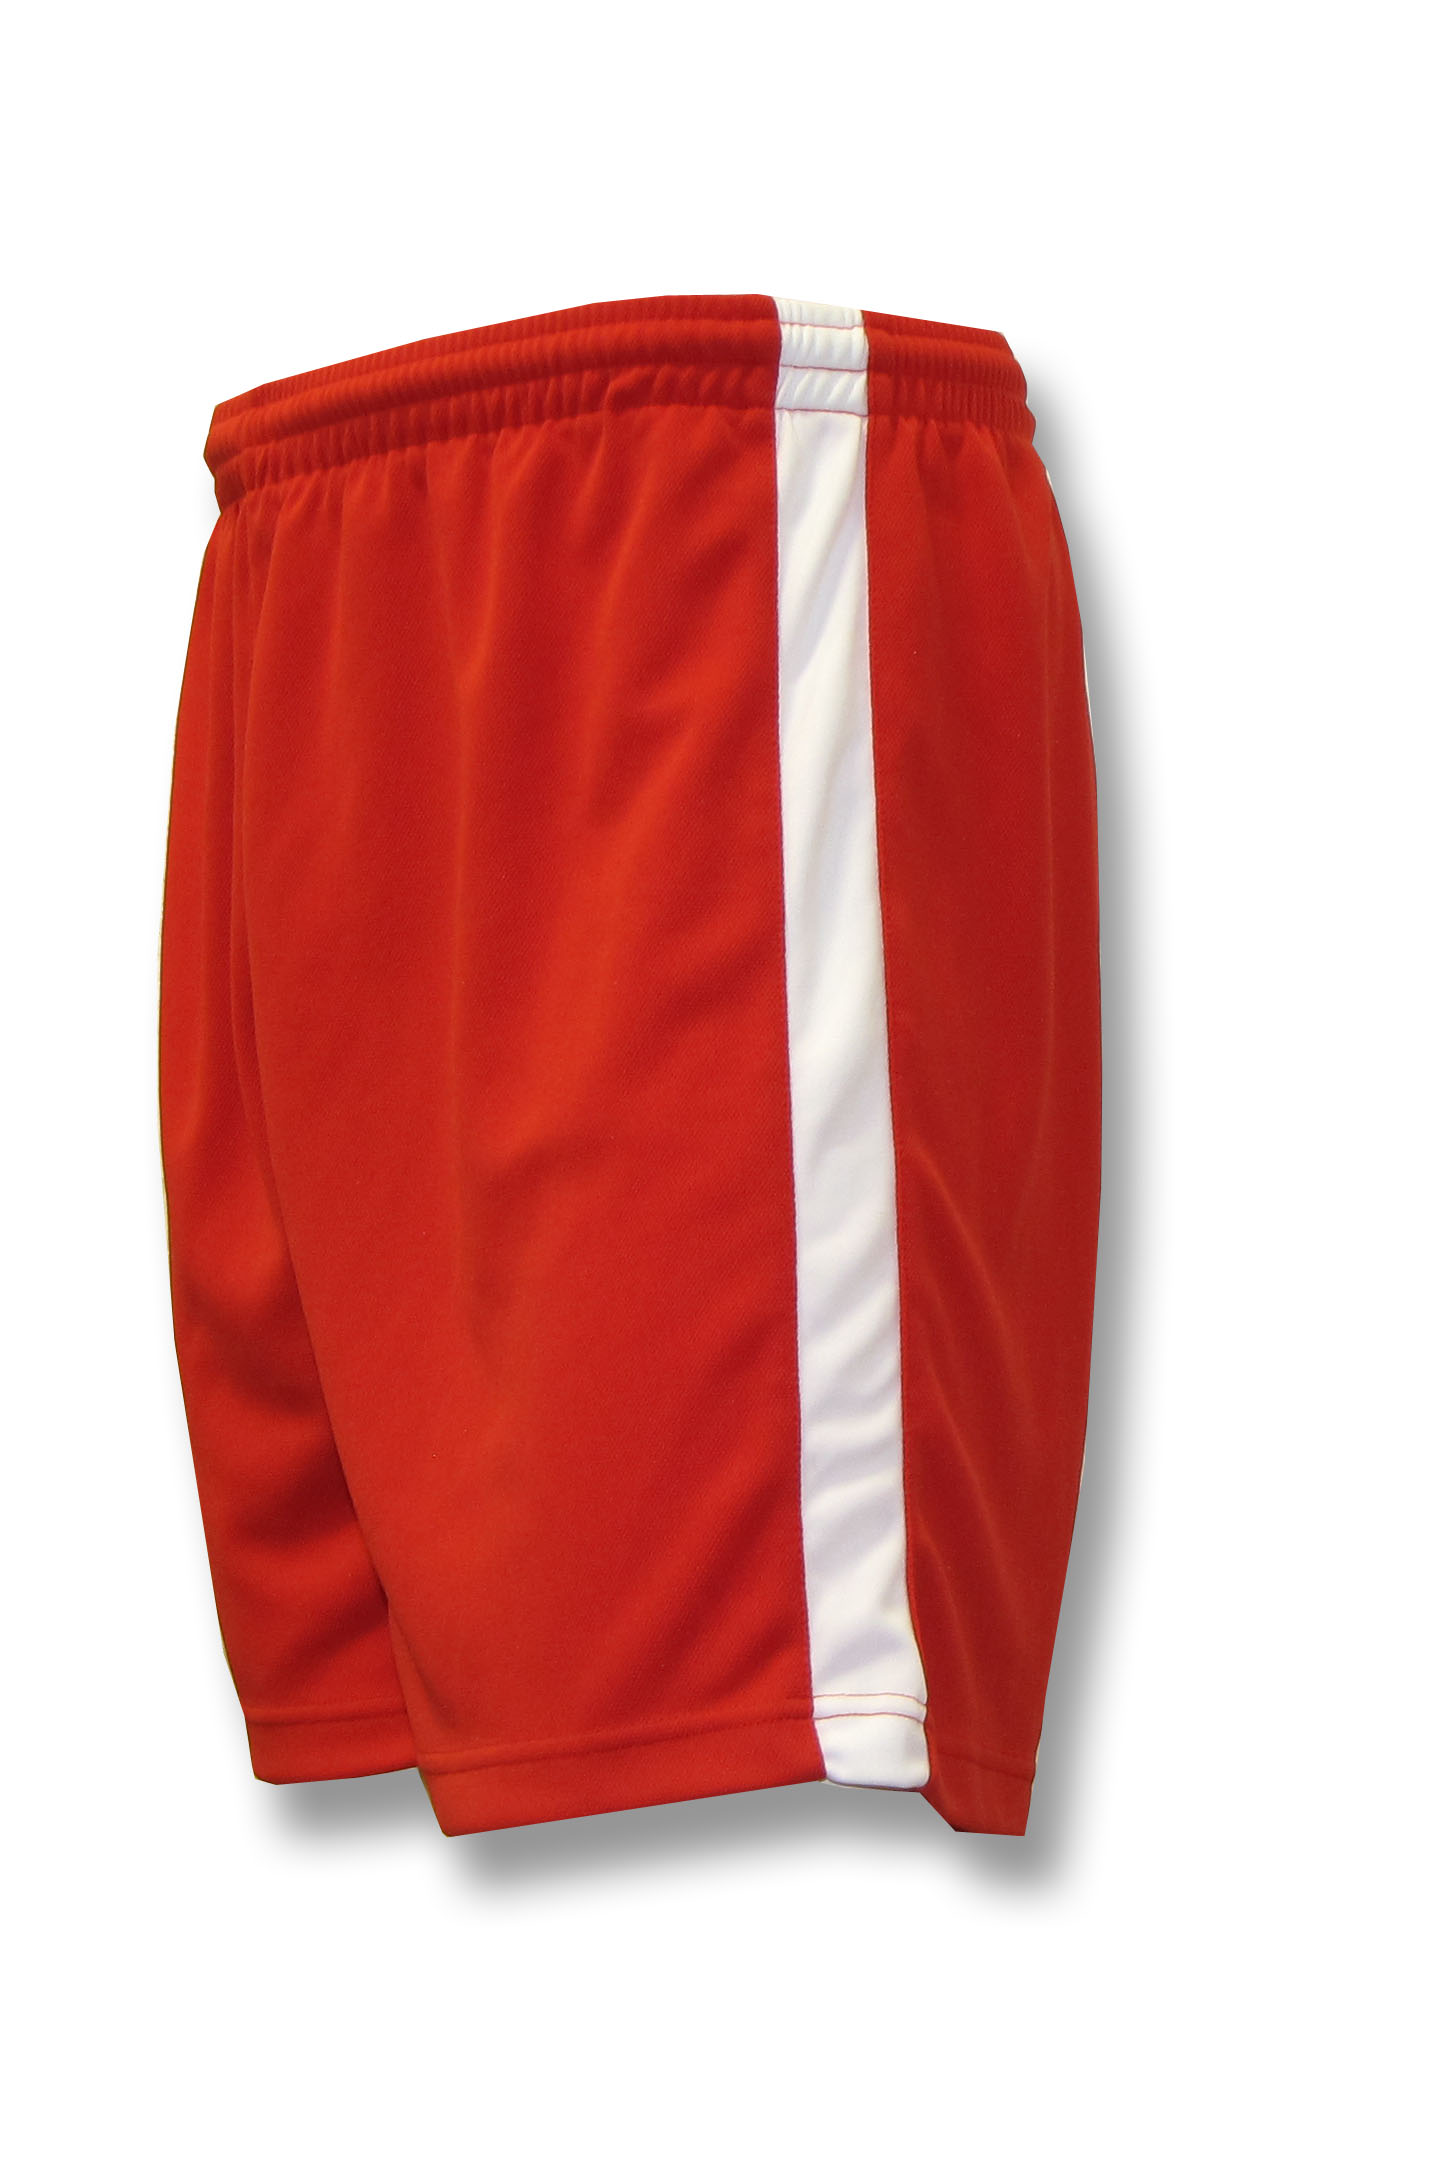 Sweeper / Cobra soccer shorts in red by Code Four Athletics